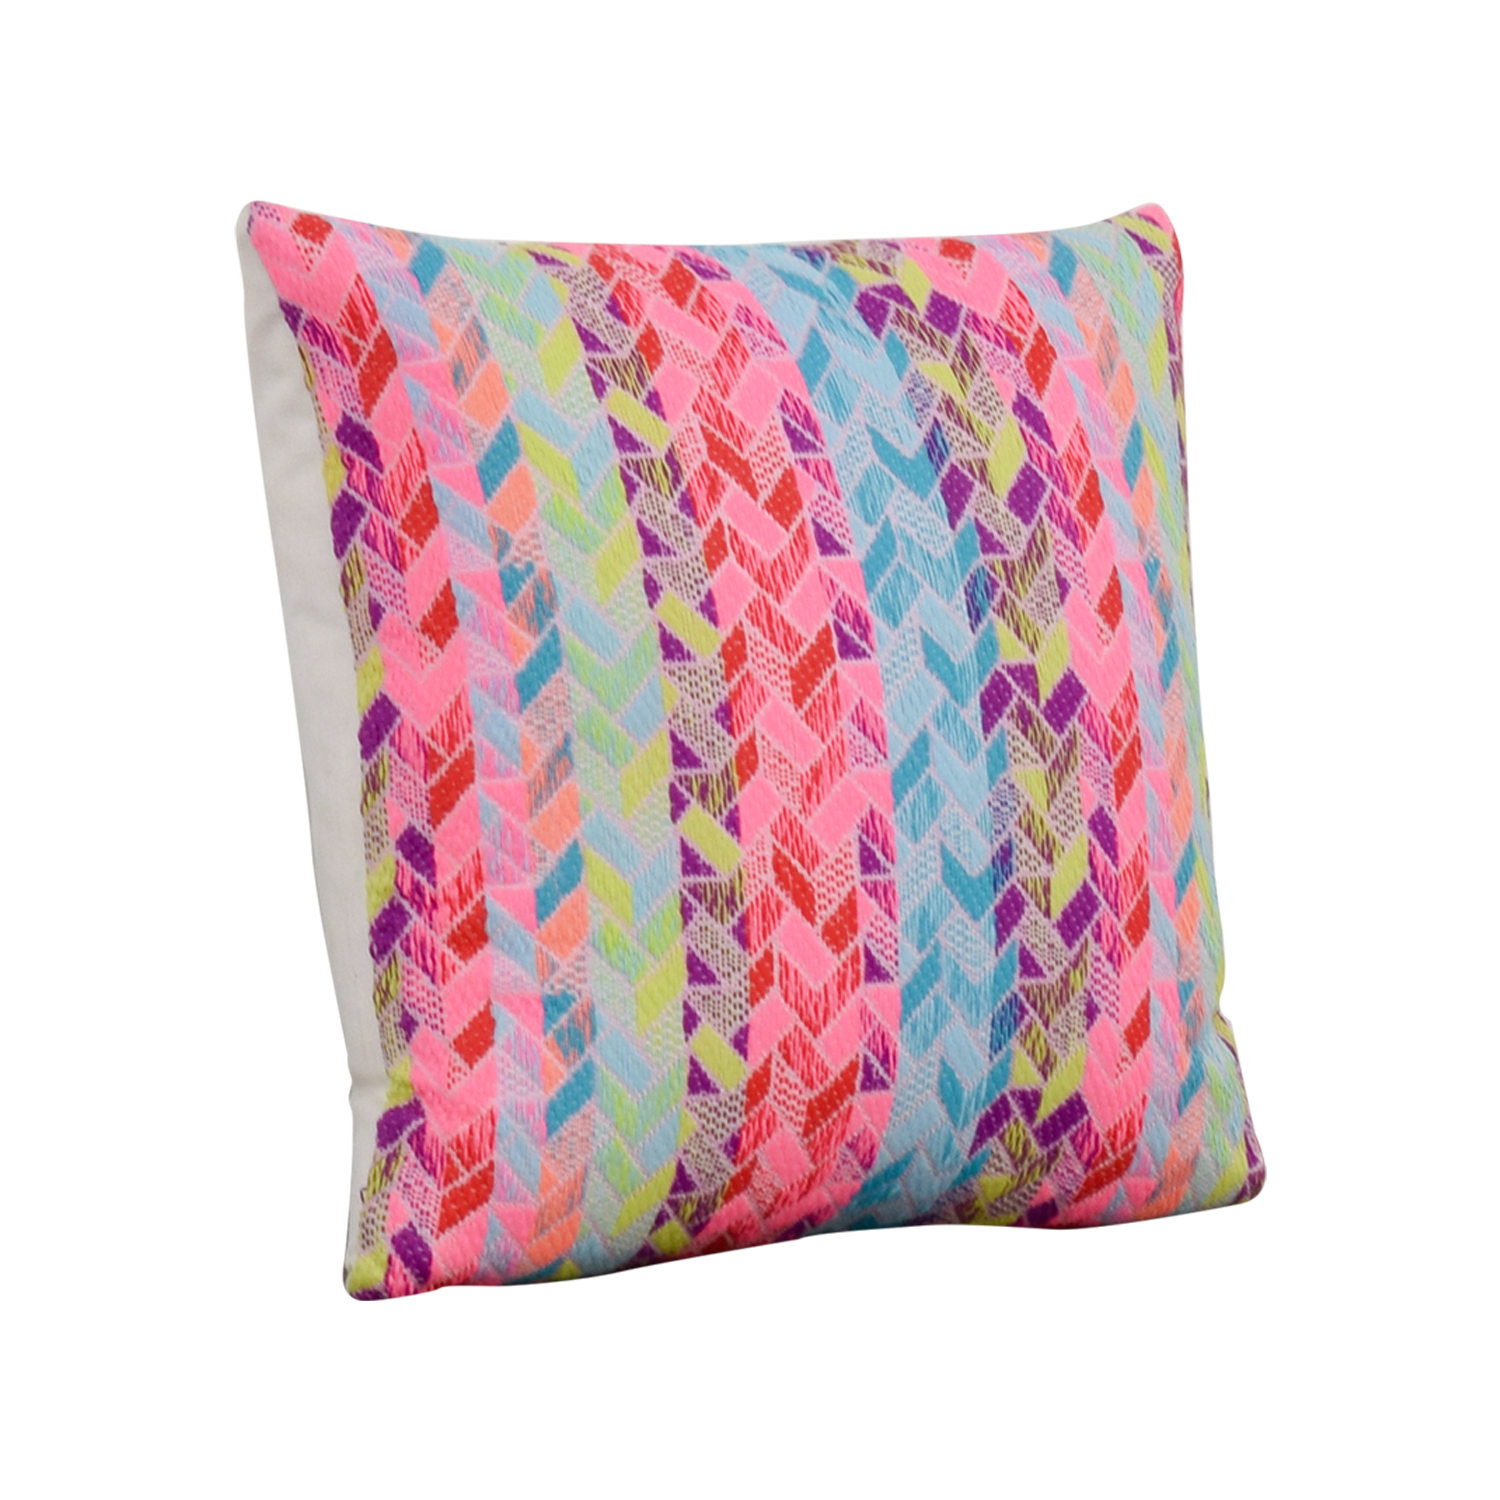 buy Society Social Society Social Multi Colored Pattern Pillow online